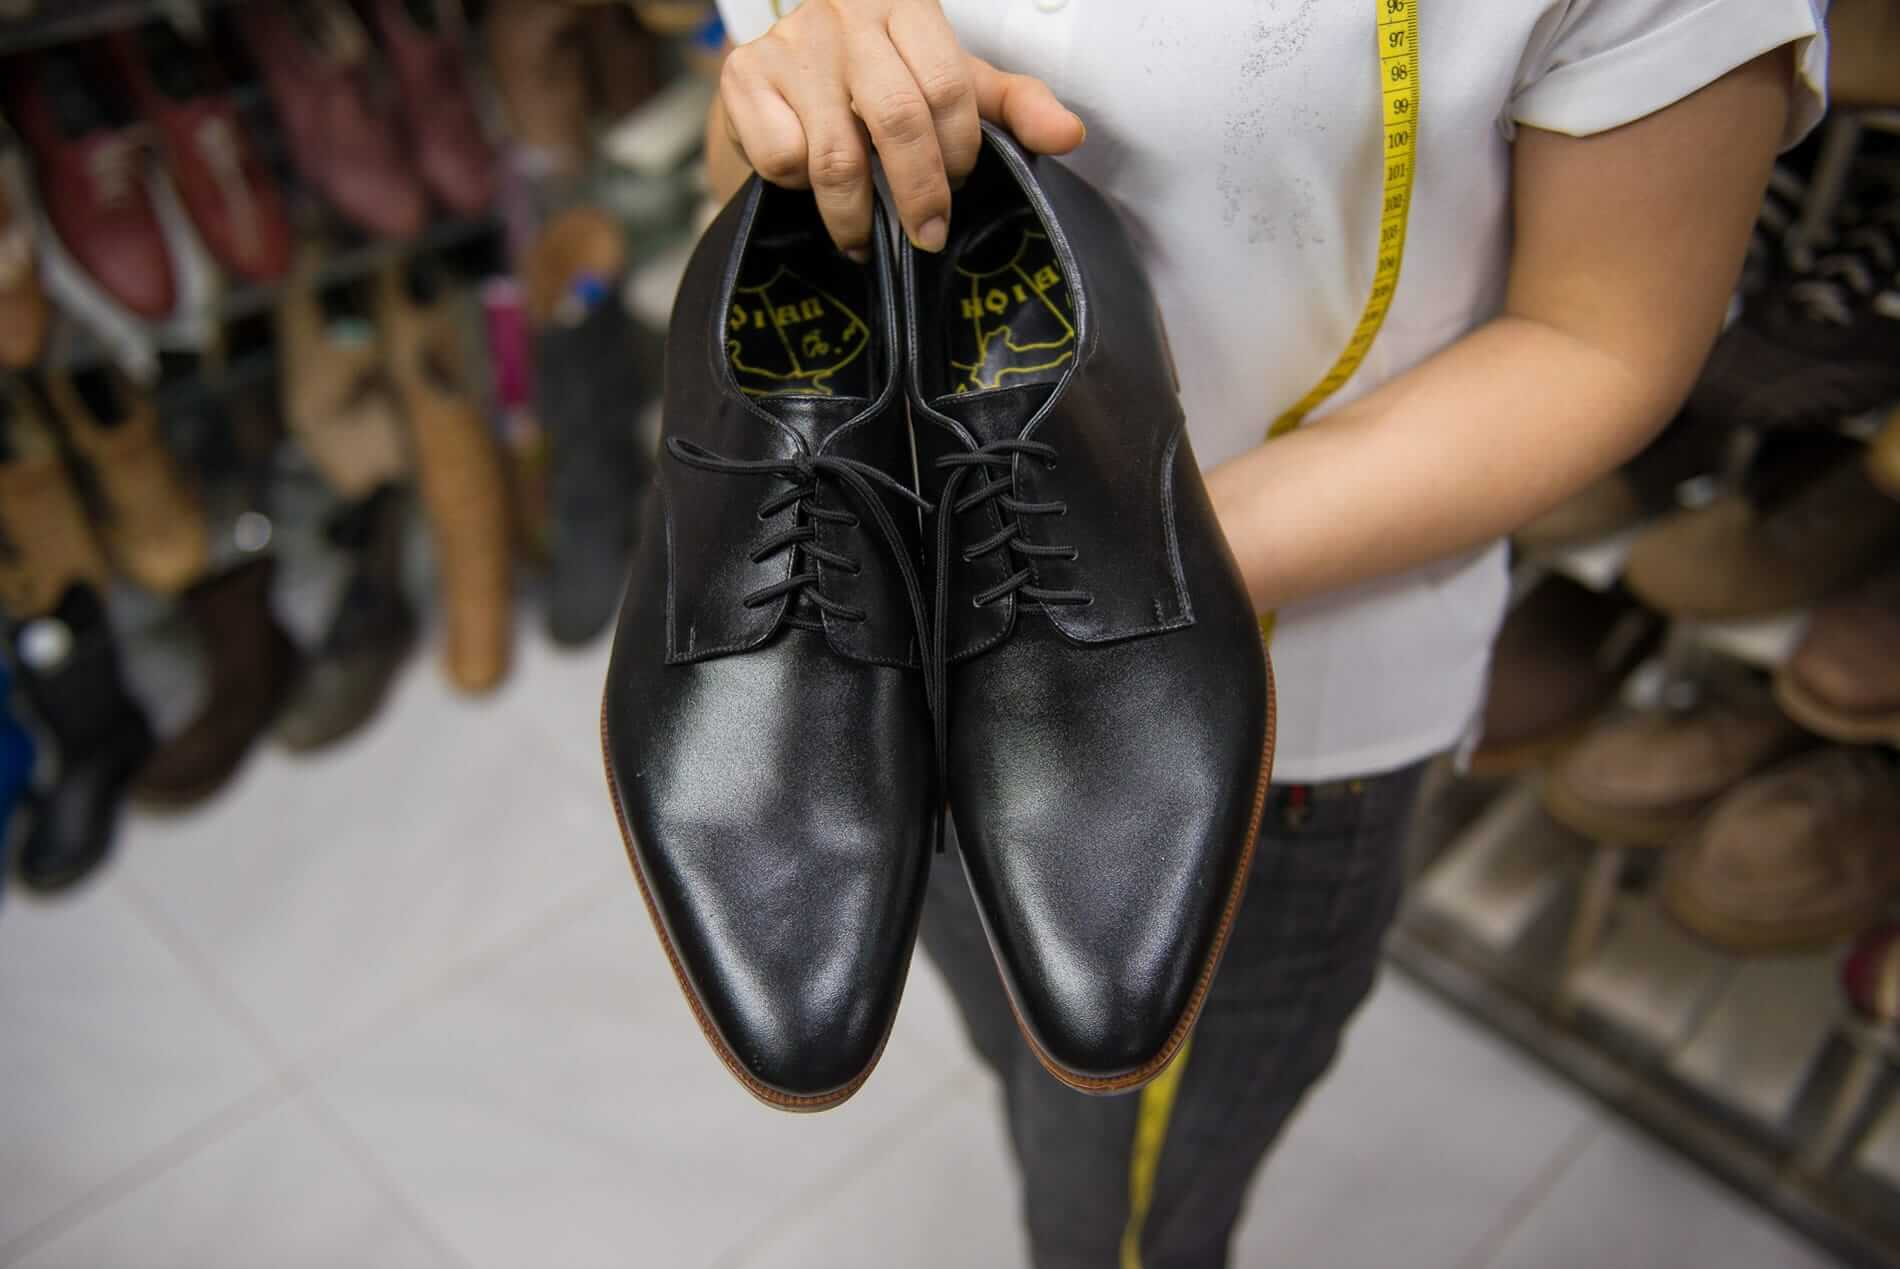 A pair of custom leather shoes